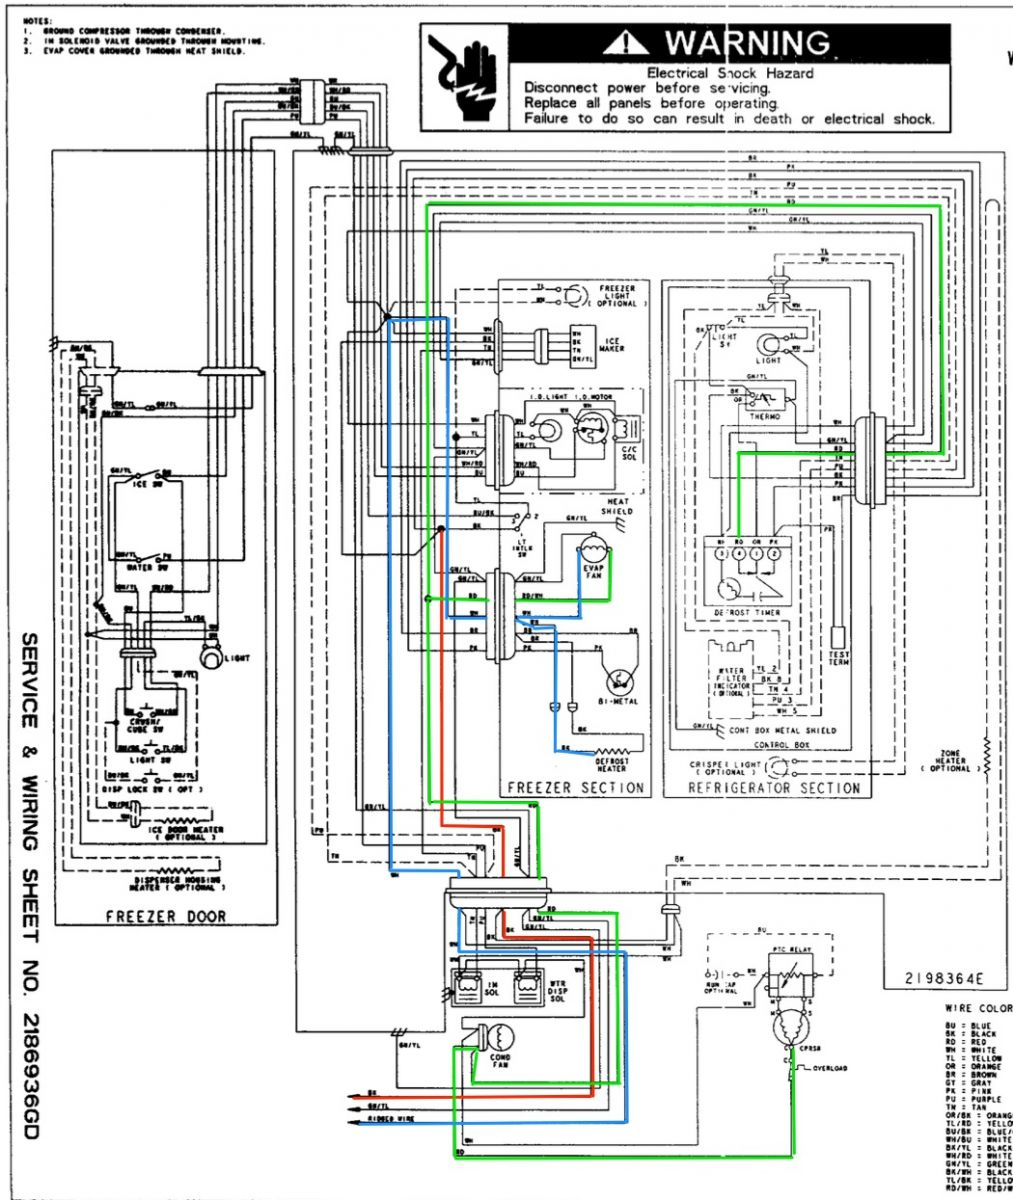 gallery_4_4_346879 whirlpool ed25rfxfw01 refrigerator wiring diagram the wiring diagram for refrigerator at gsmx.co